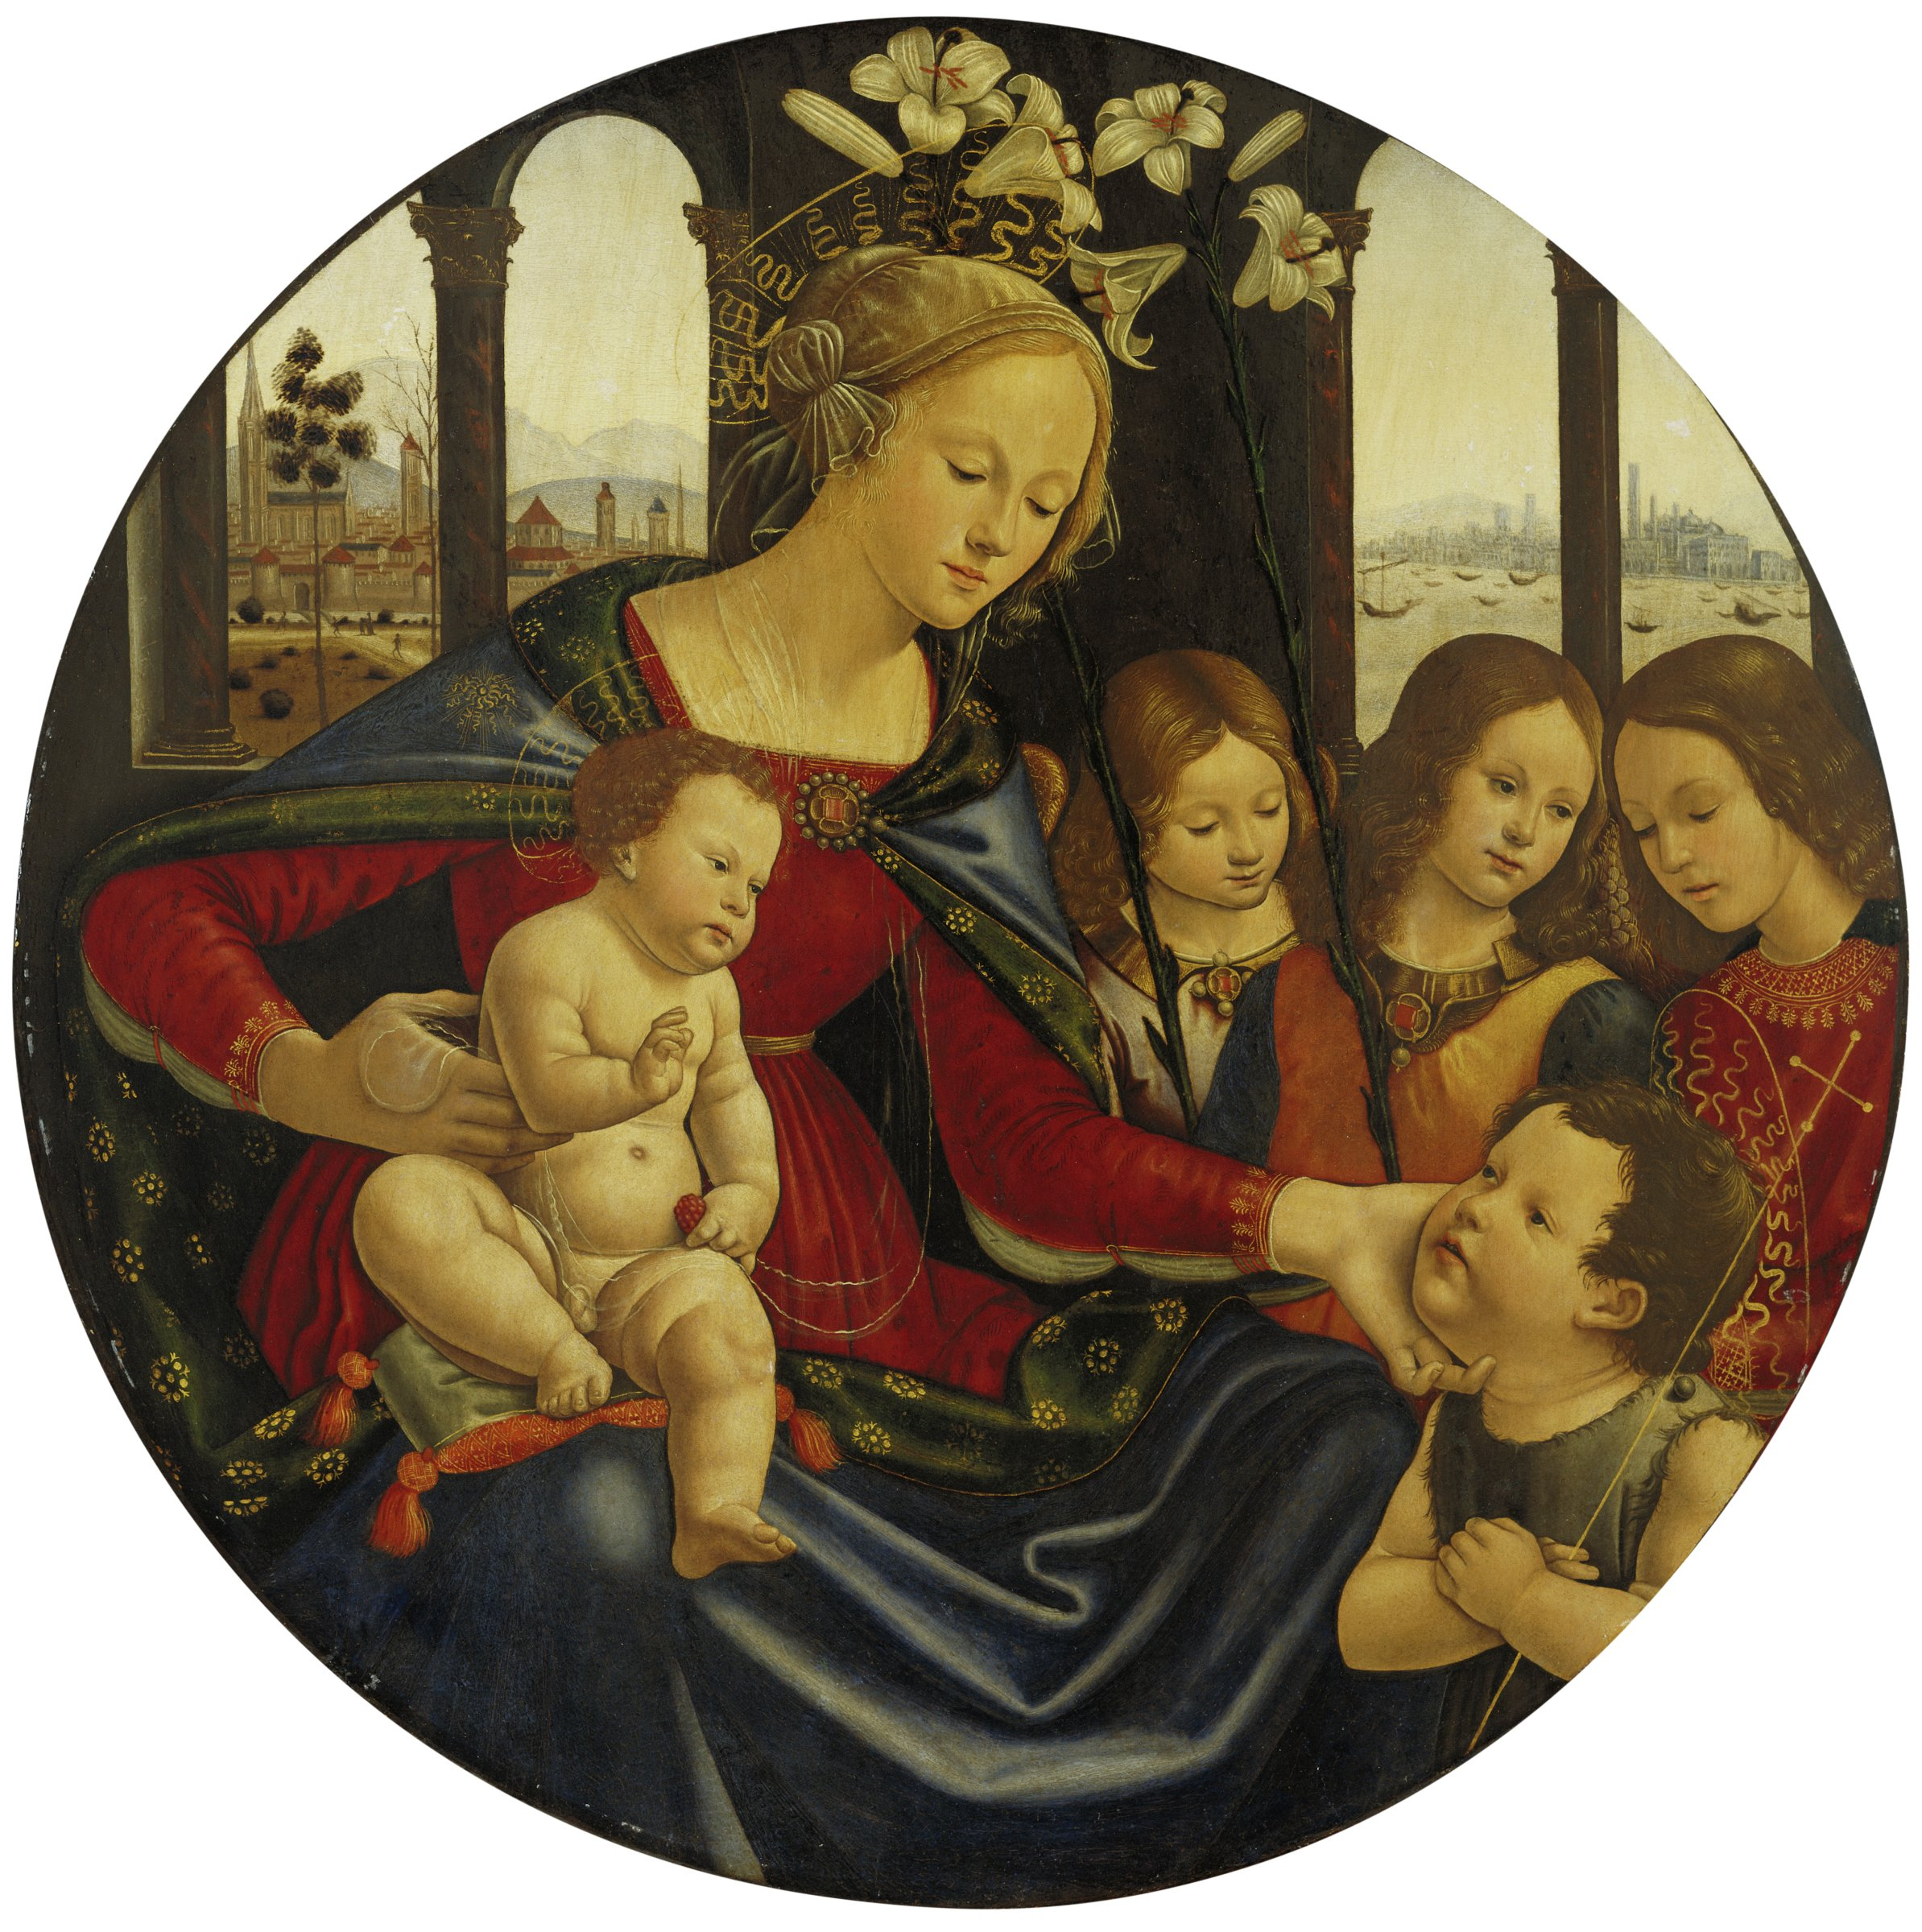 In this round painting the Virgin Mary holds the Christ Child in her lap with one hand and affectionately touches the face of the young John the Baptist with the other. Behind them stand three young angels. The setting is a room with windows behind them that look out onto an Italian landscape.